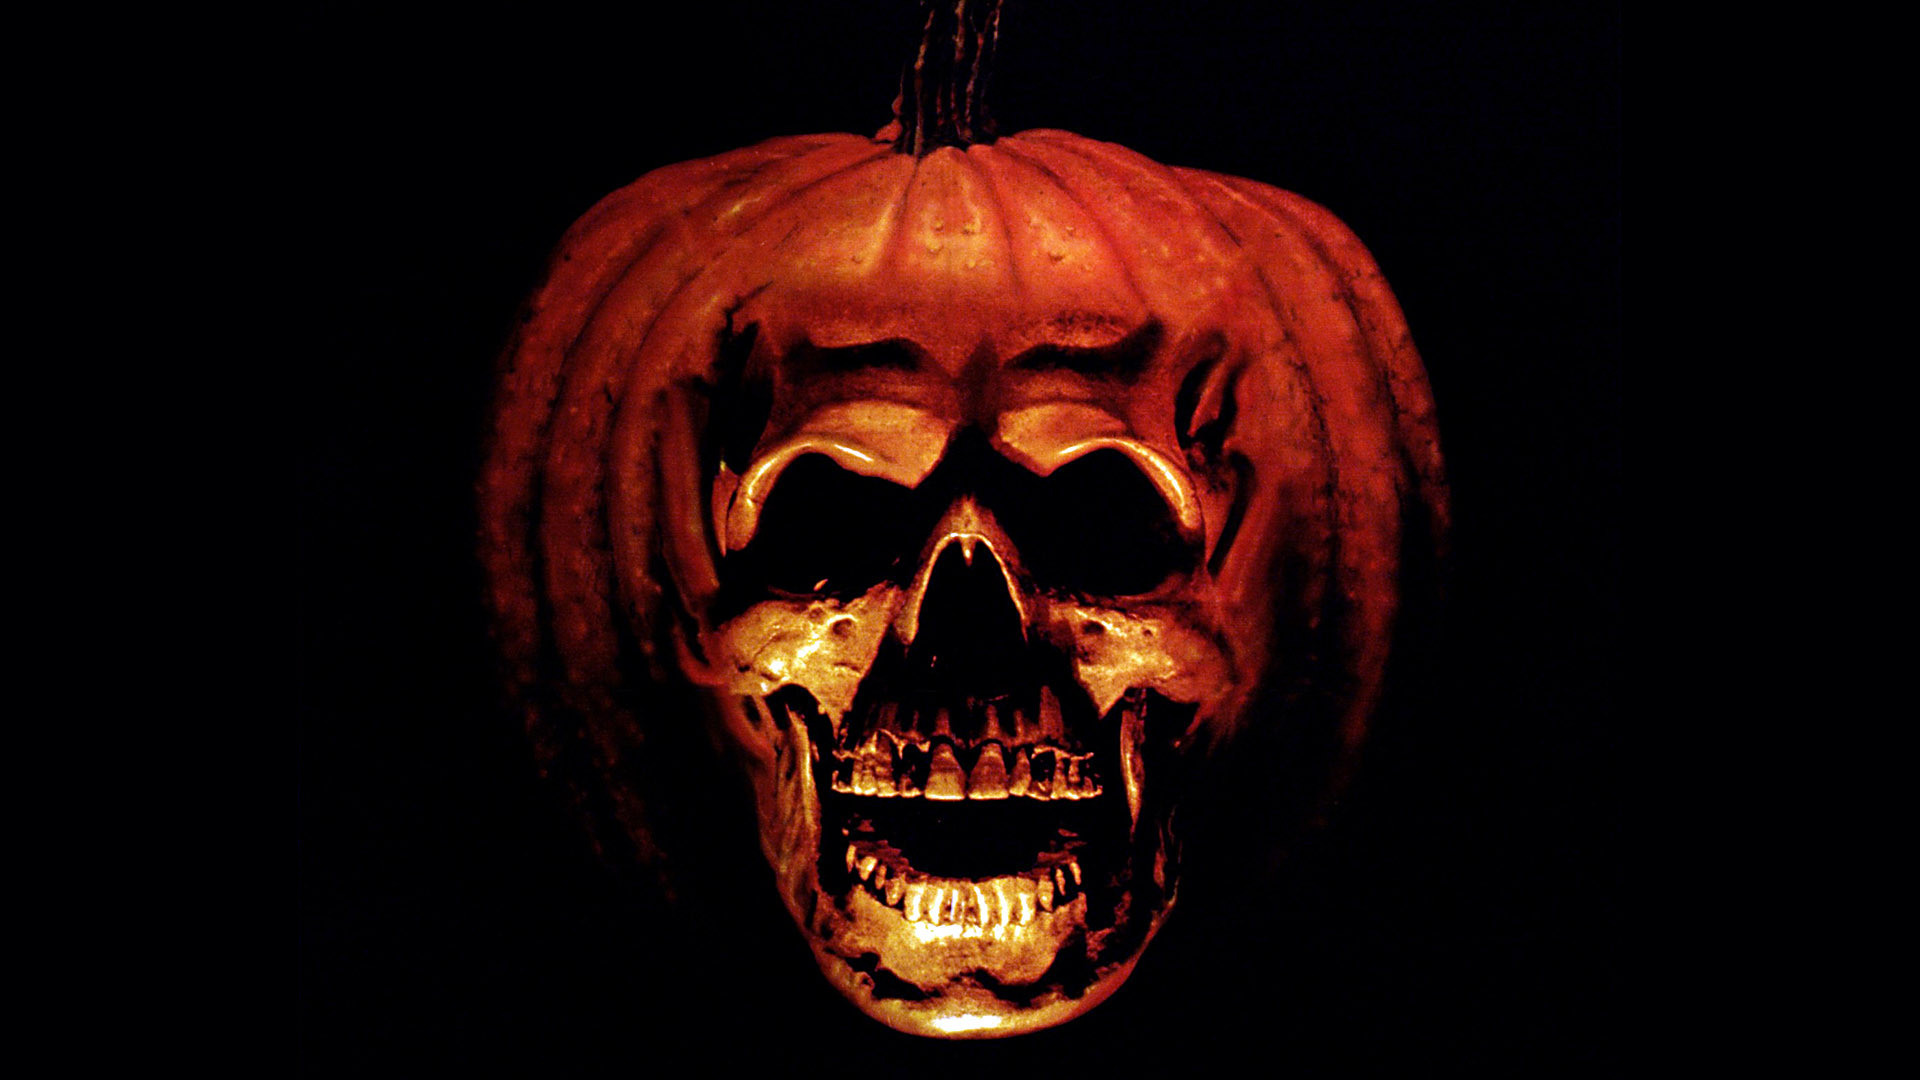 posted in uncategorized tagged dirty horror halloween halloween ii skull halloween movies halloween october 31st halloween skull leave a reply - Halloween Skull